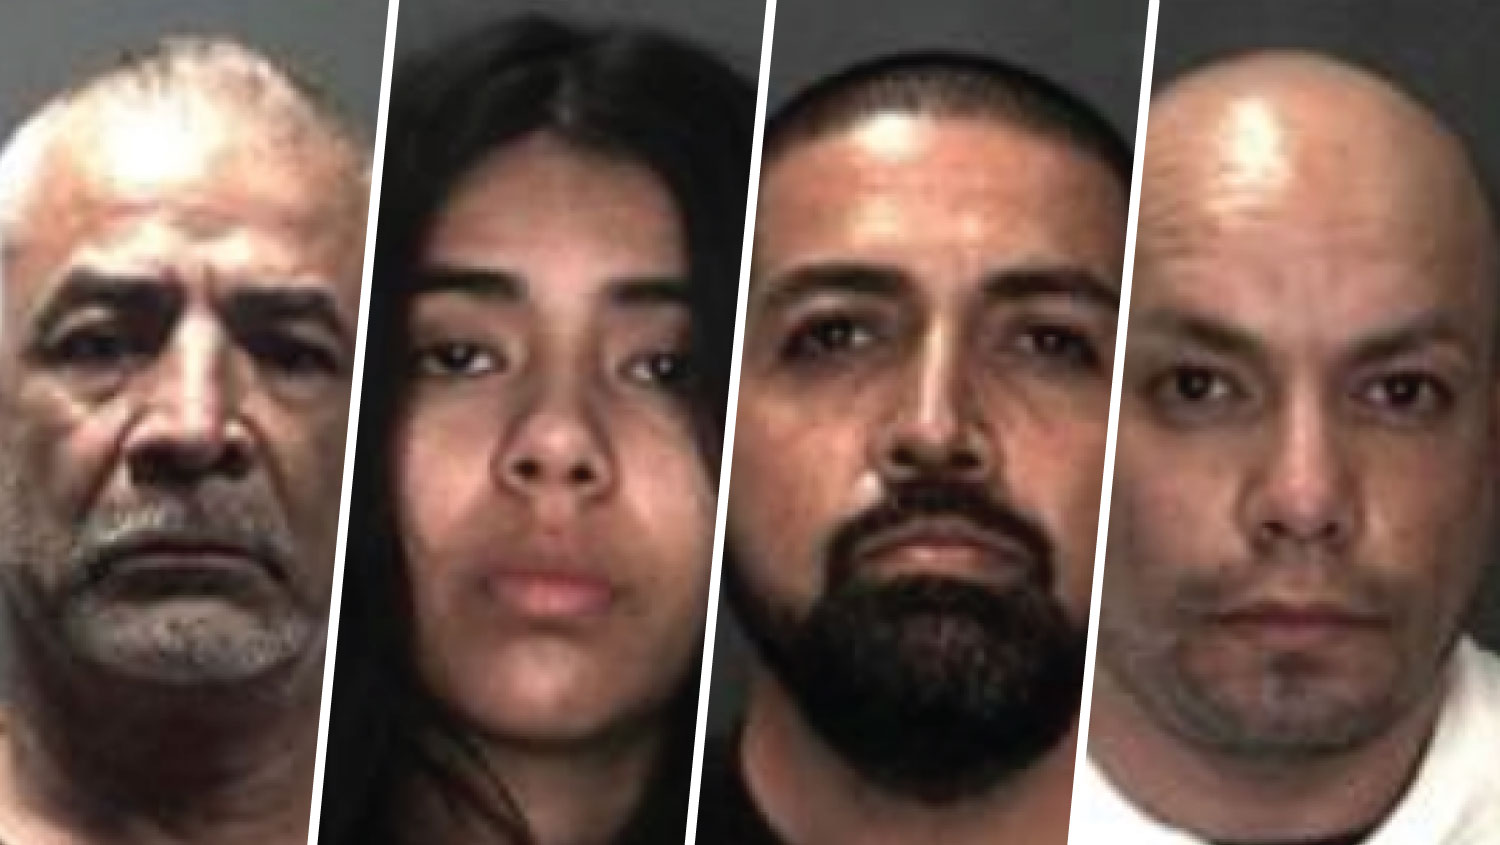 4 Arrested in Connection With Sexually Assaulting Underage Victims at Grow House, Police Say